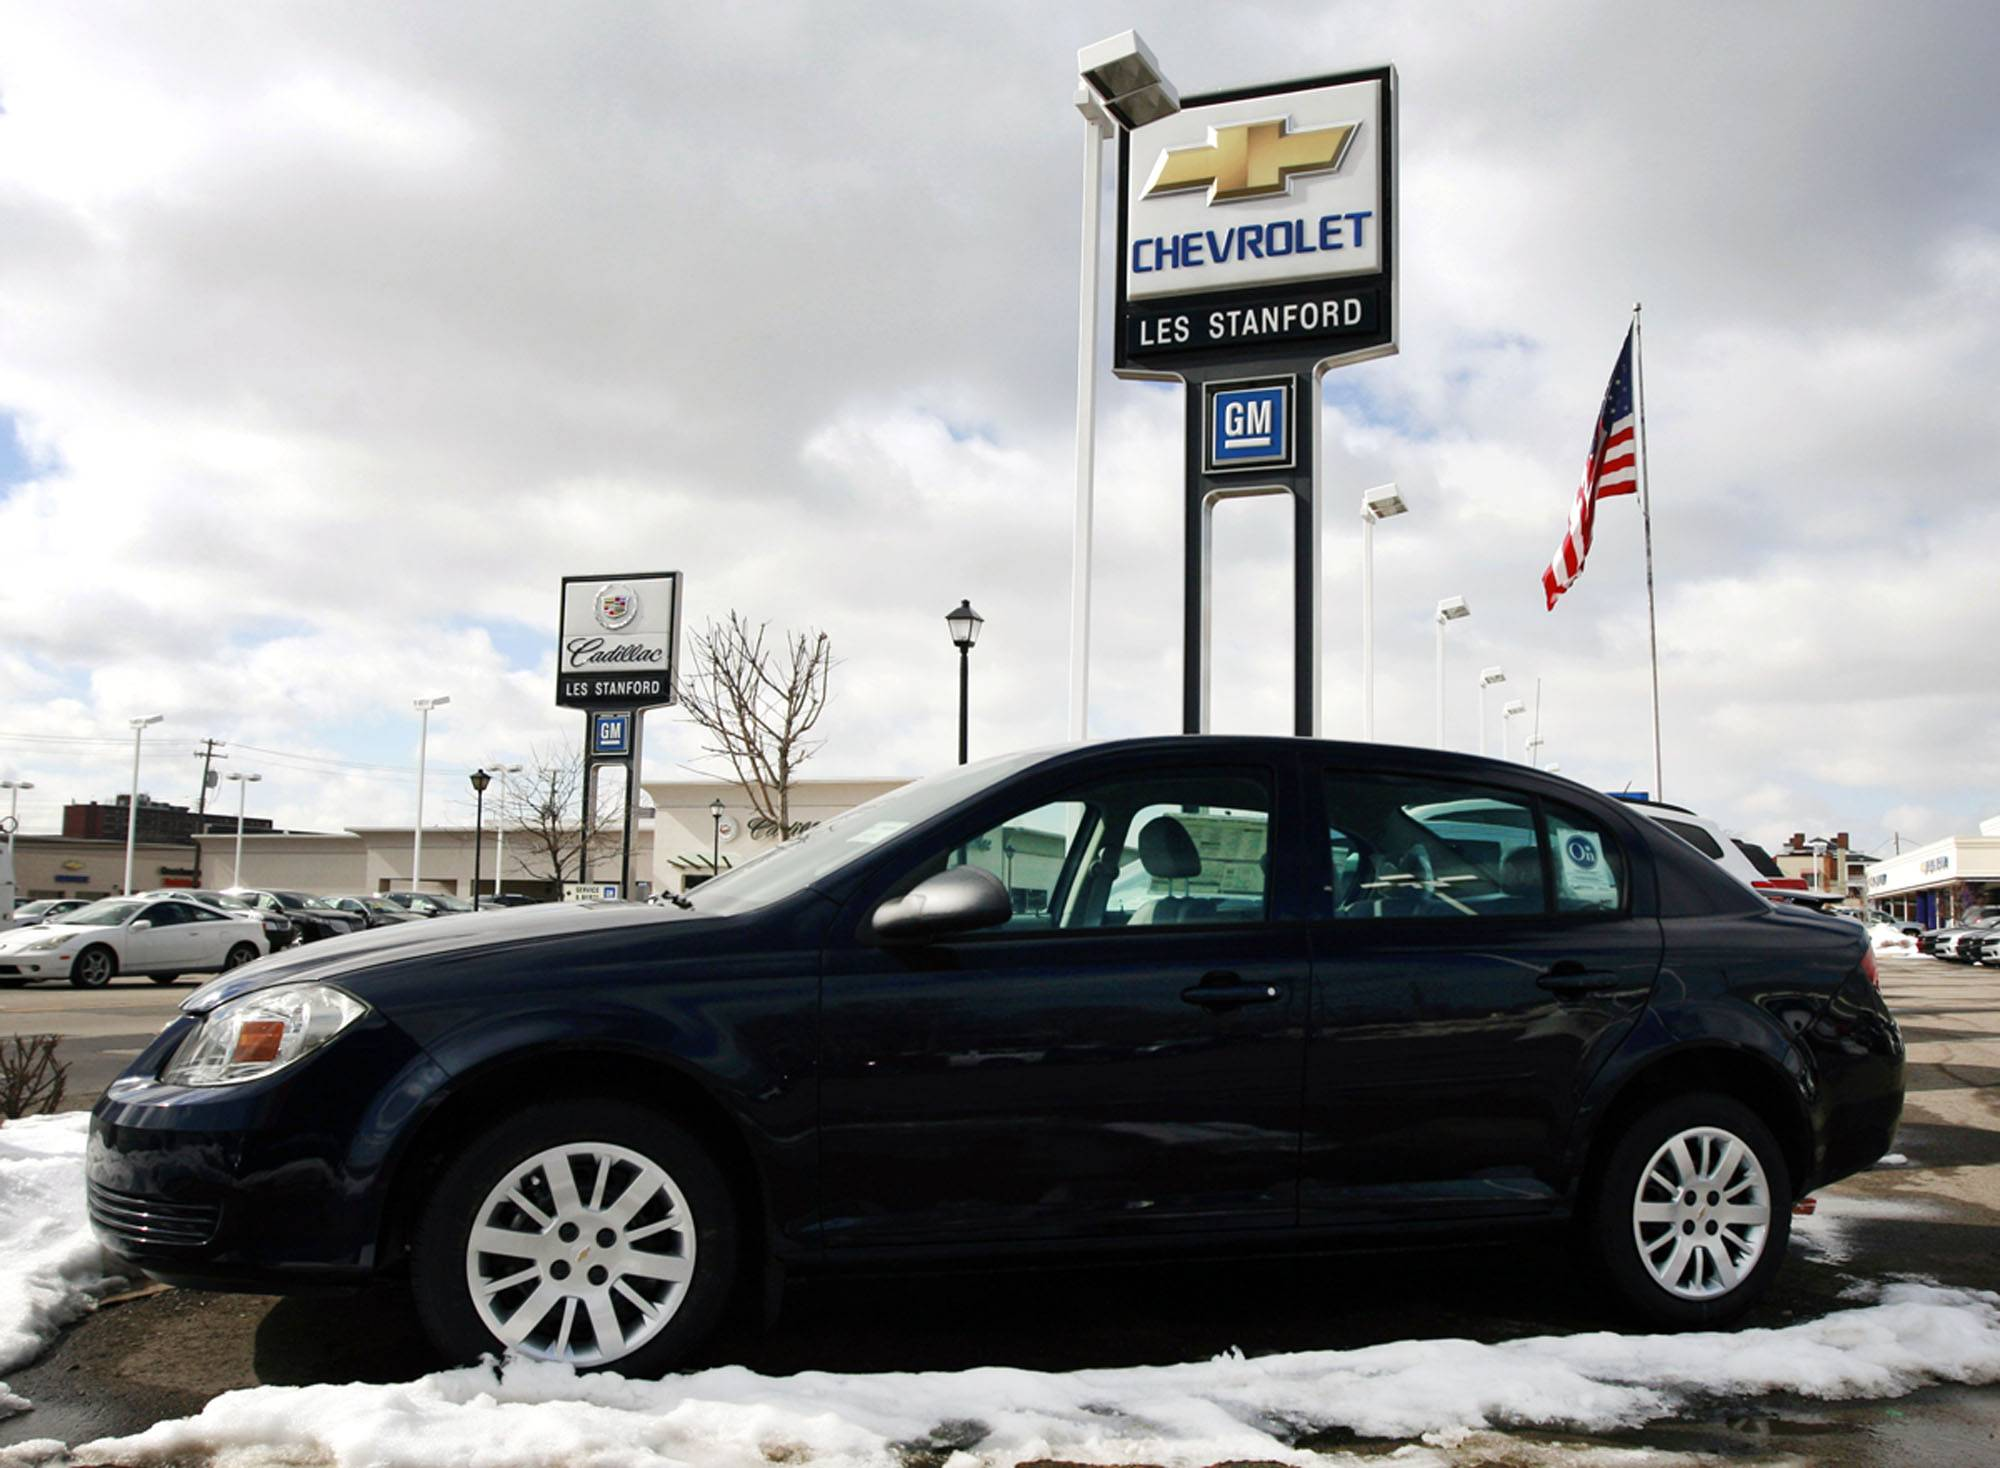 A General Motors Co. 2010 Chevrolet Cobalt sits on the lot of Les Stanford Chevrolet in Dearborn, Michigan, U.S., on Tuesday, March 2, 2010. General Motors Co. plans to recall 1.3 million Pontiac and Chevrolet vehicles in North America, including 2005-2010 Cobalts, to fix power-steering systems after U.S. regulators received more than 1,100 consumer complaints about failures. Photographer: Jeff Kowalsky/Bloomberg